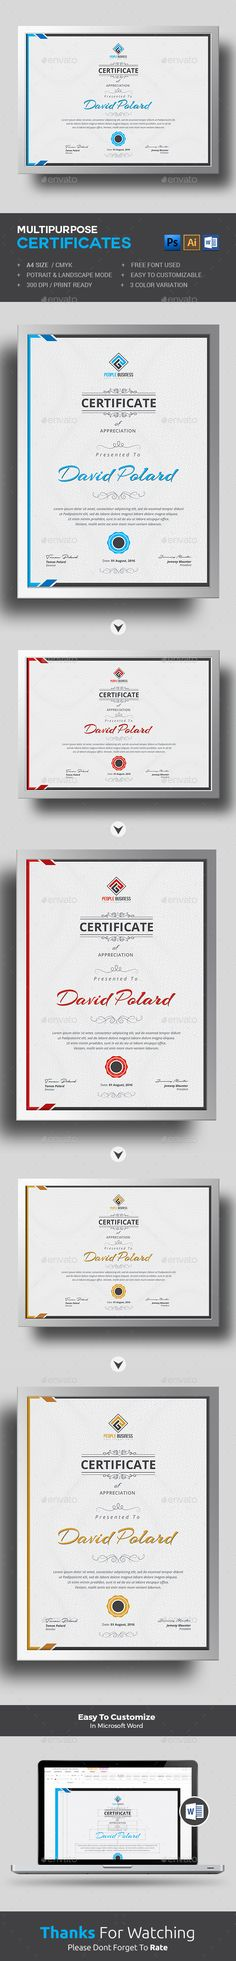 Multipurpose Certificates | Training, Wells And Certificate Templates